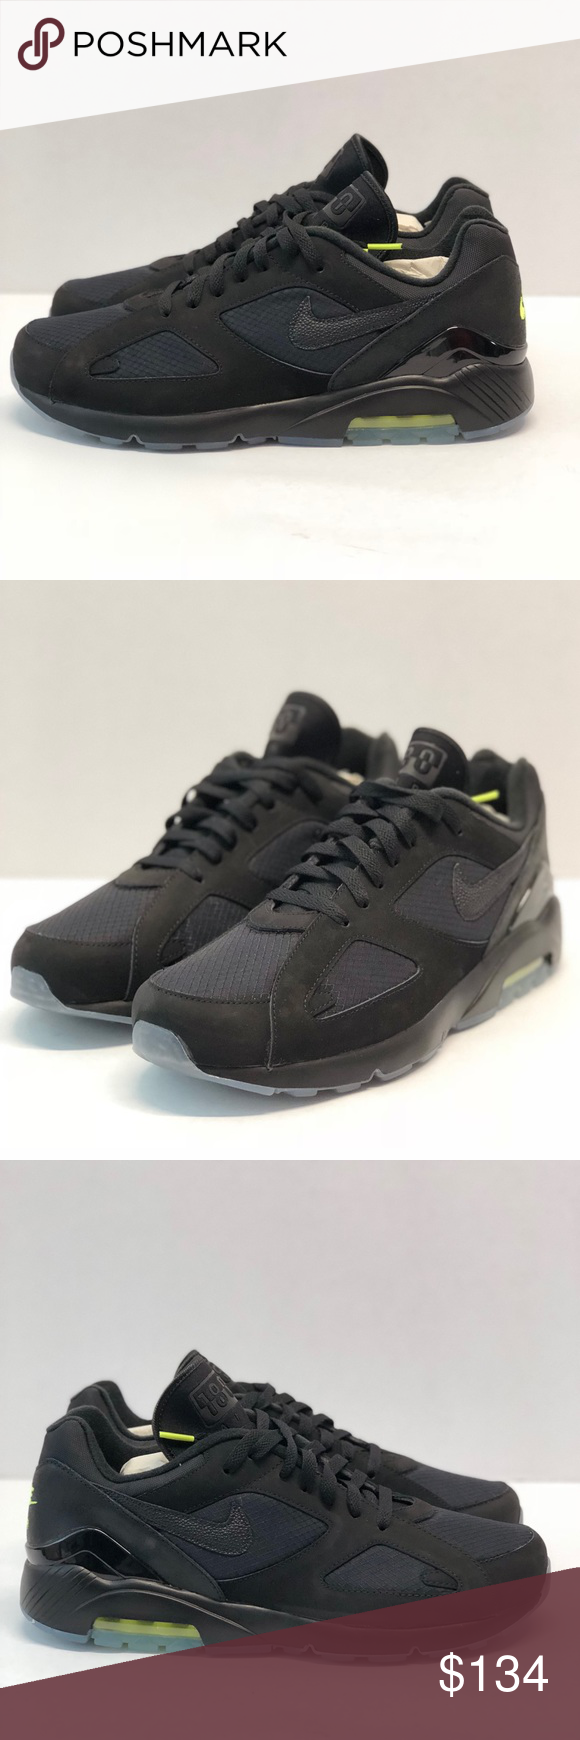 """Men s Nike Air Max 180 """"night ops"""" pack - Black volt Please inspect all  pics! Thank you! Nike Shoes Sneakers 249c79f55"""